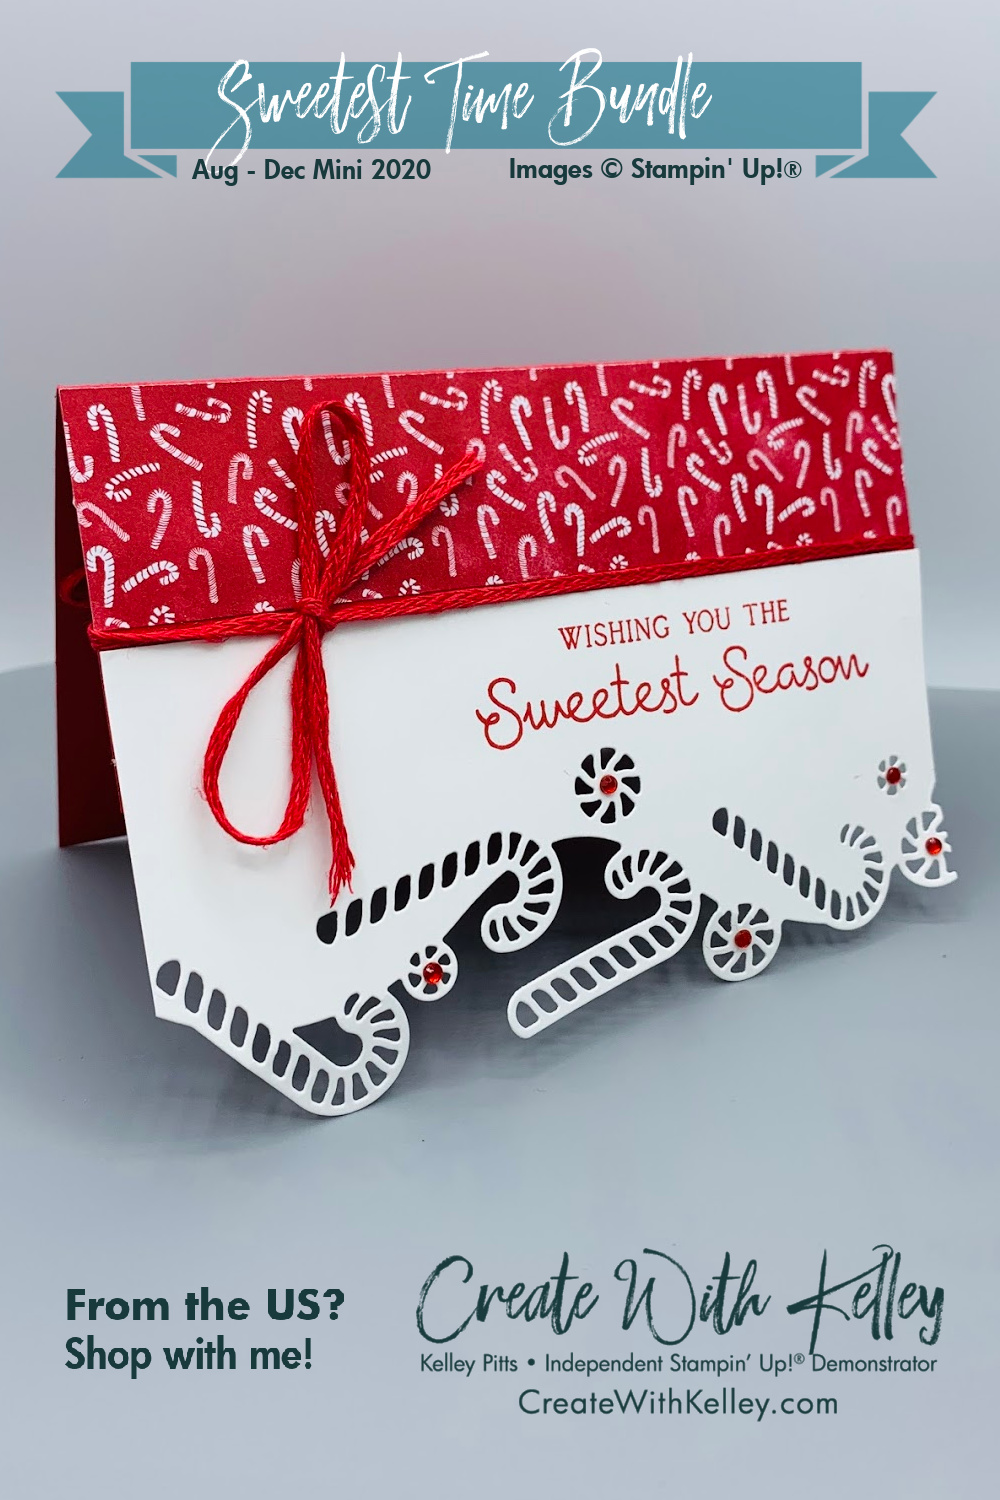 Most Wonderful Time Sweetest Time Candy Cane